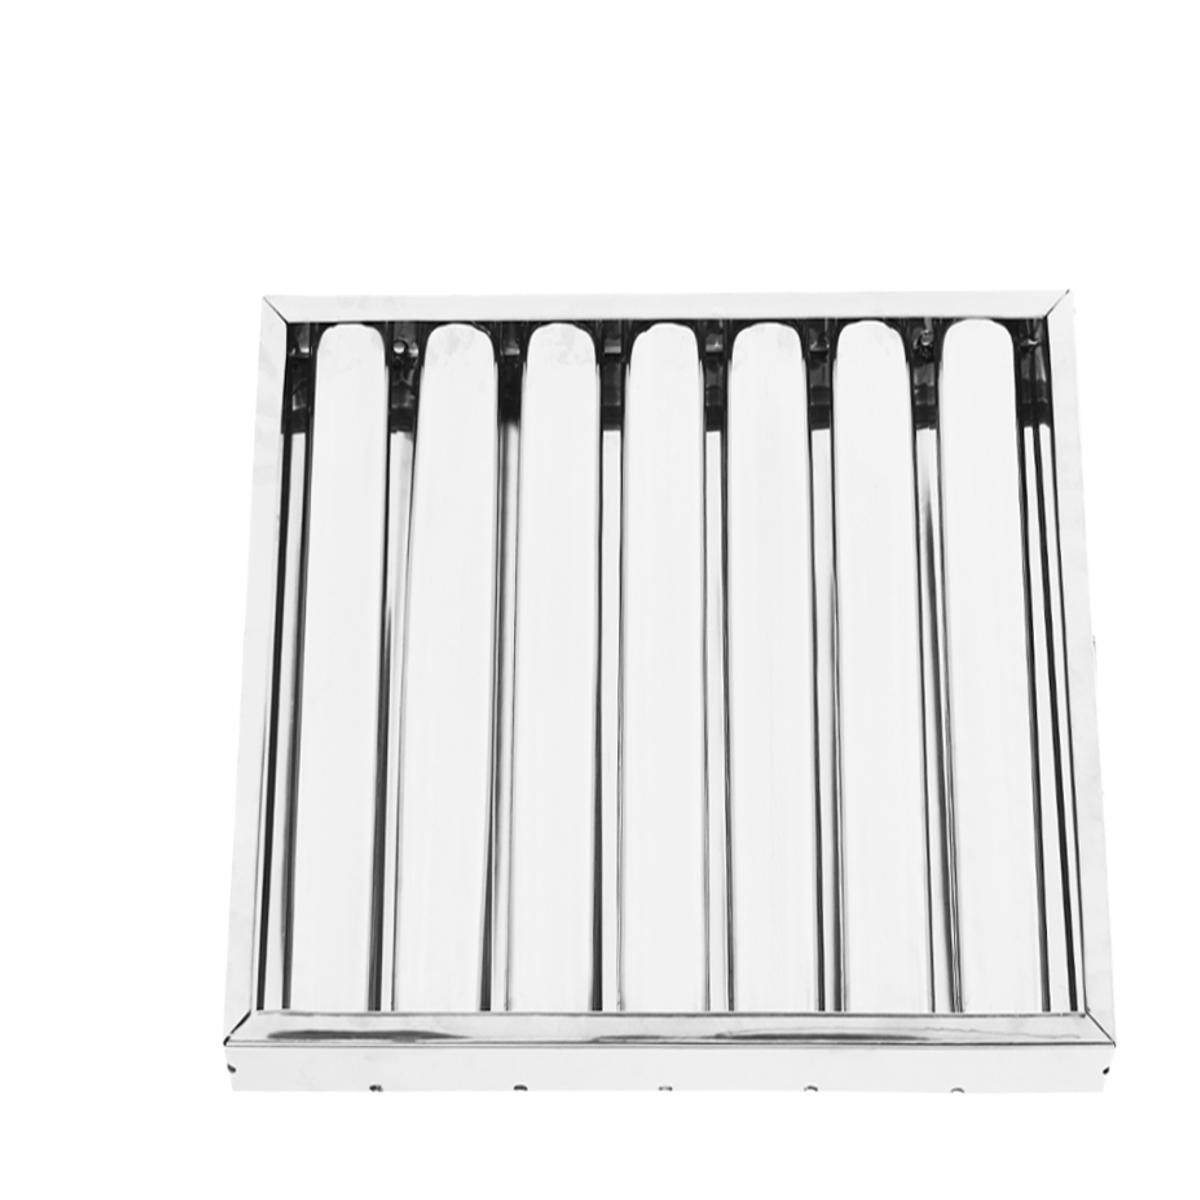 Box Of 6 Defense Galvanized Steel Commercial Hood Baffle Grease Filter 20 X 20 By Five Star Store.